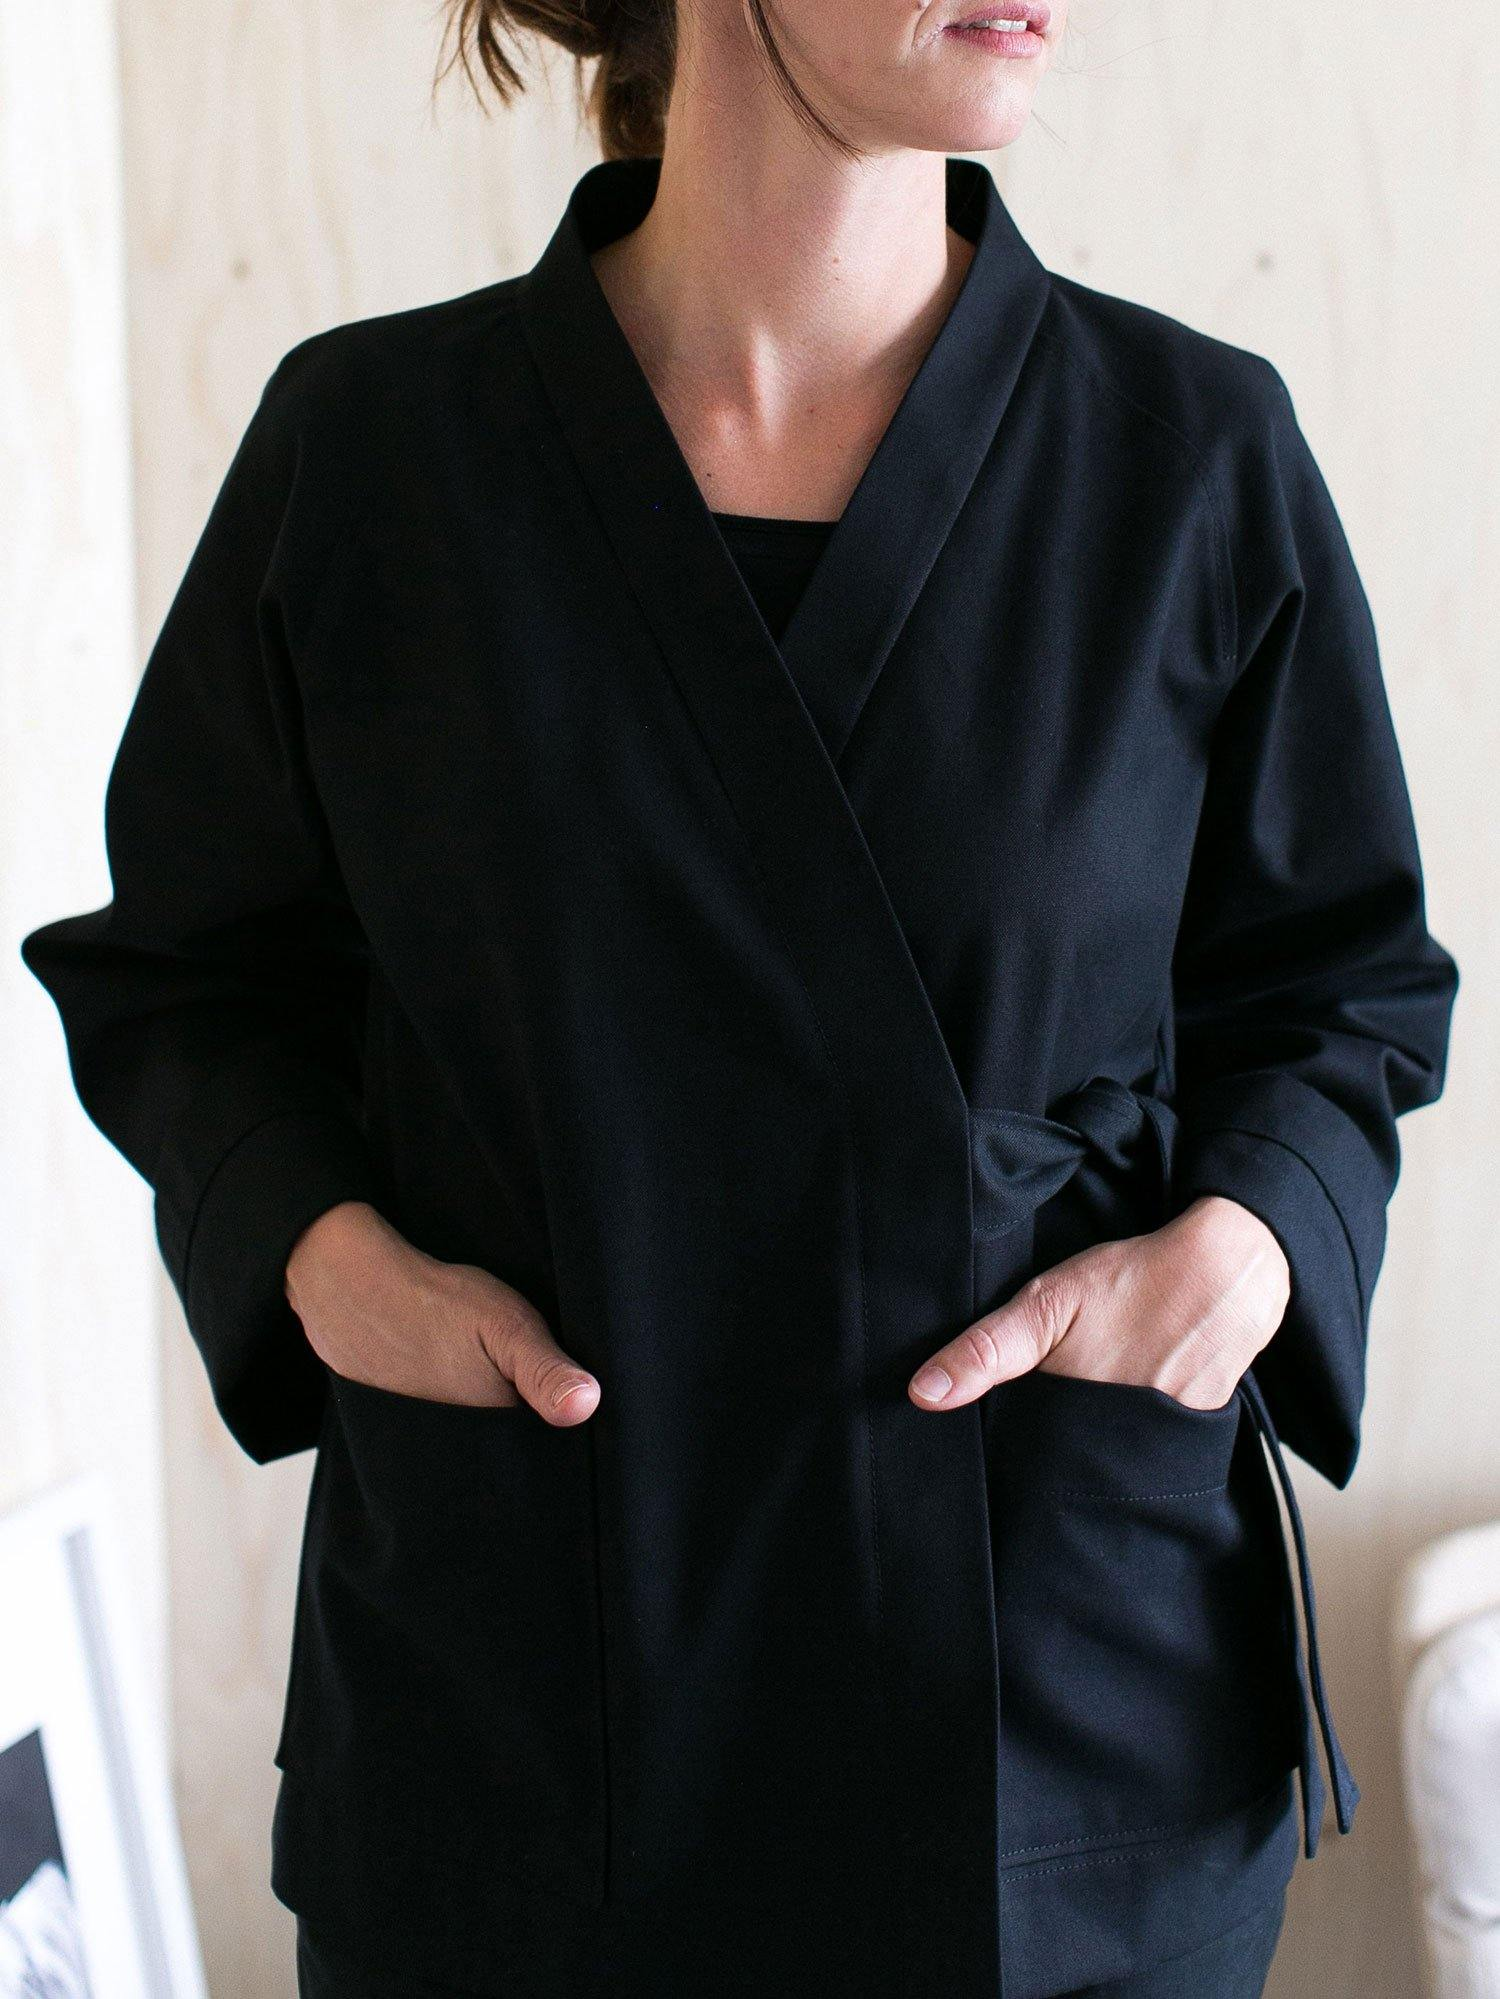 How to add the Wrap jacket neckline